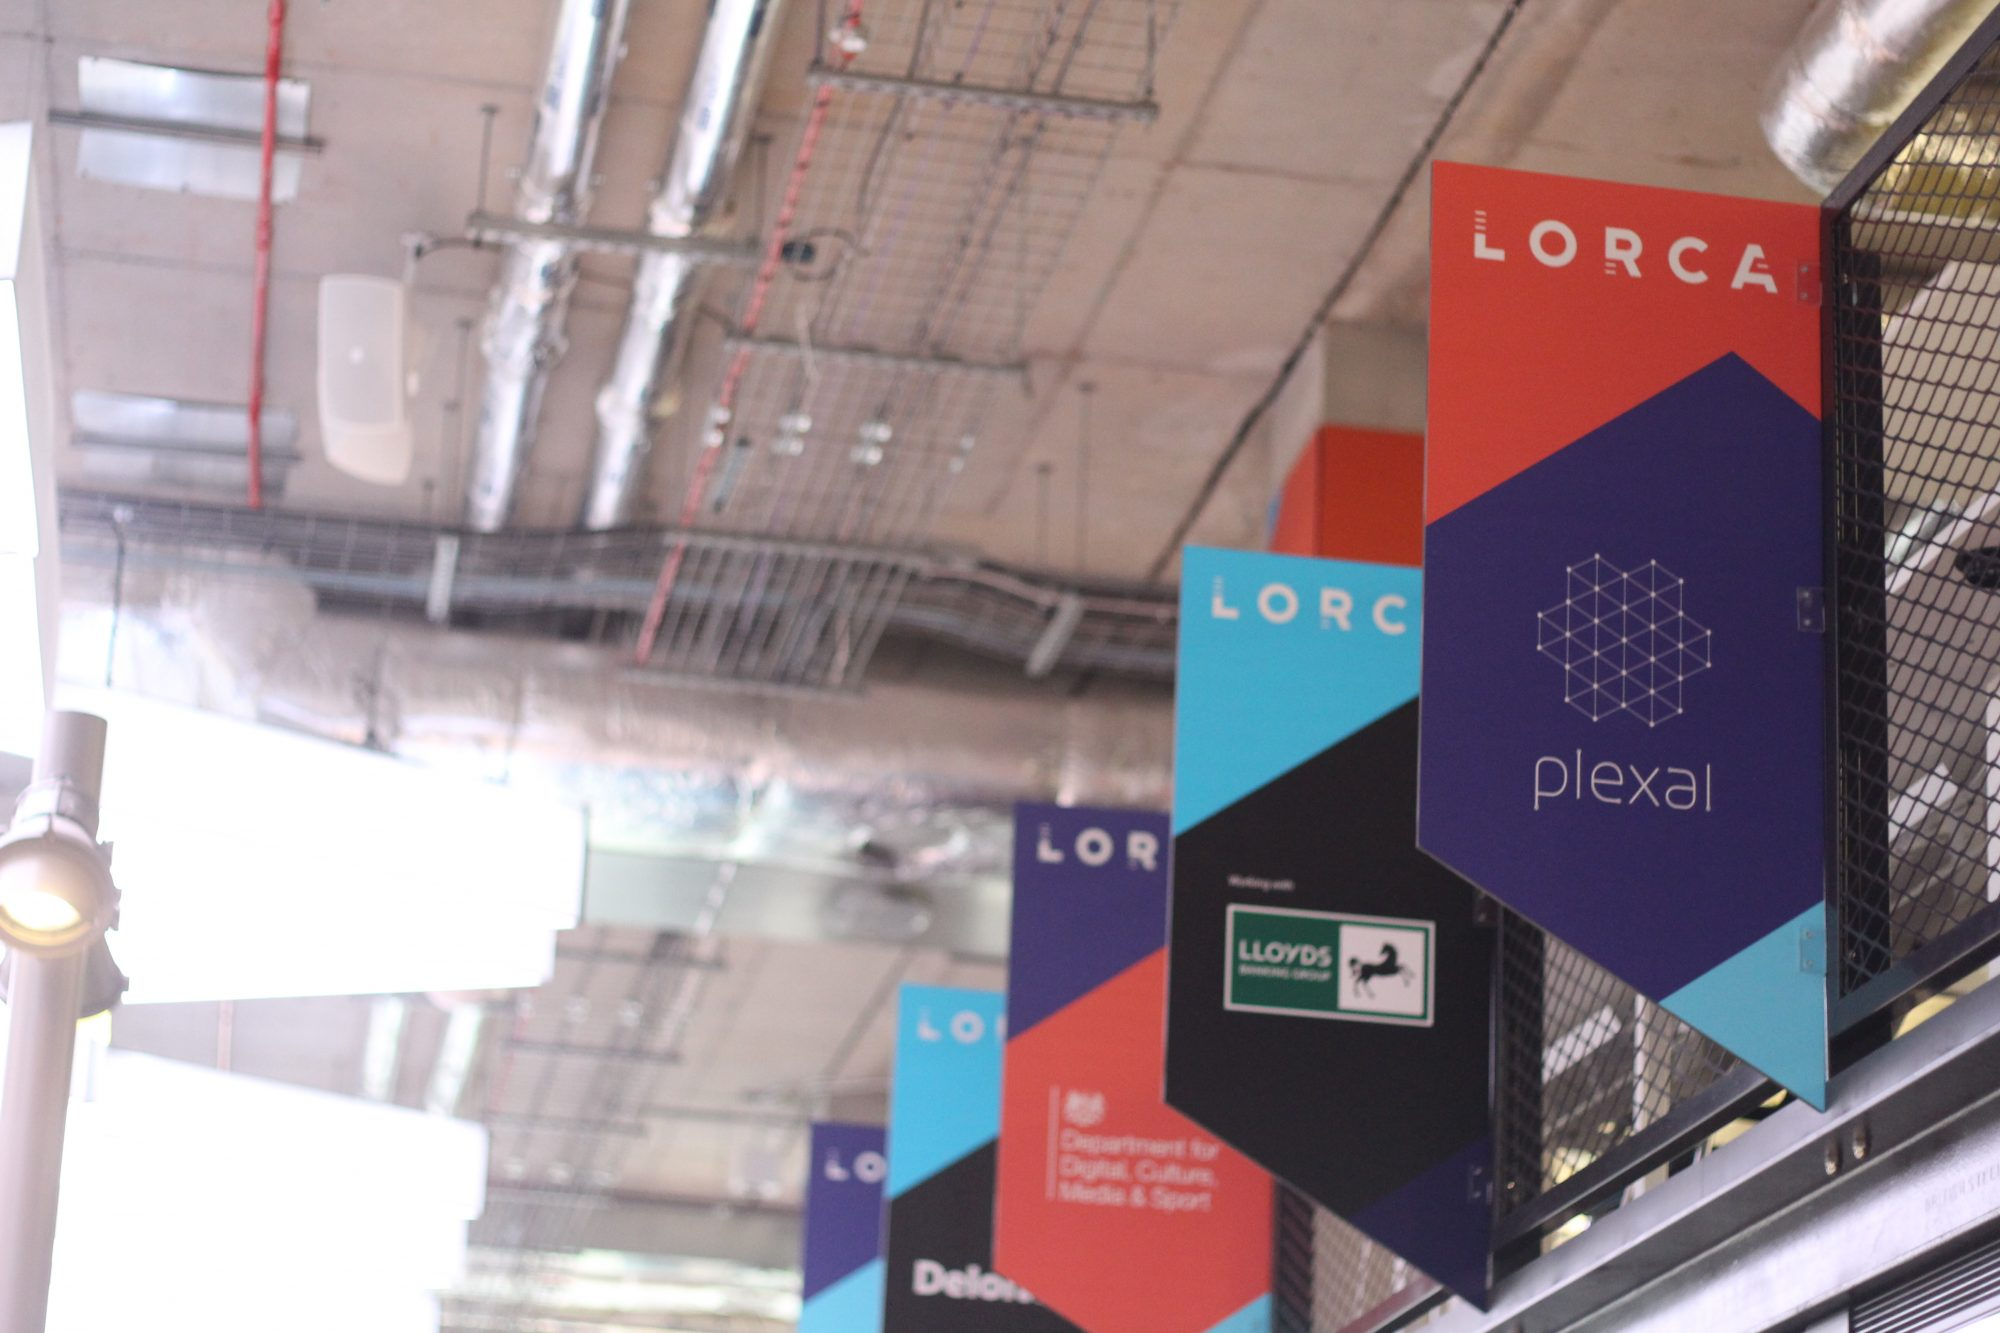 Introducing LORCA: the London Office for Rapid Cybersecurity Advancement